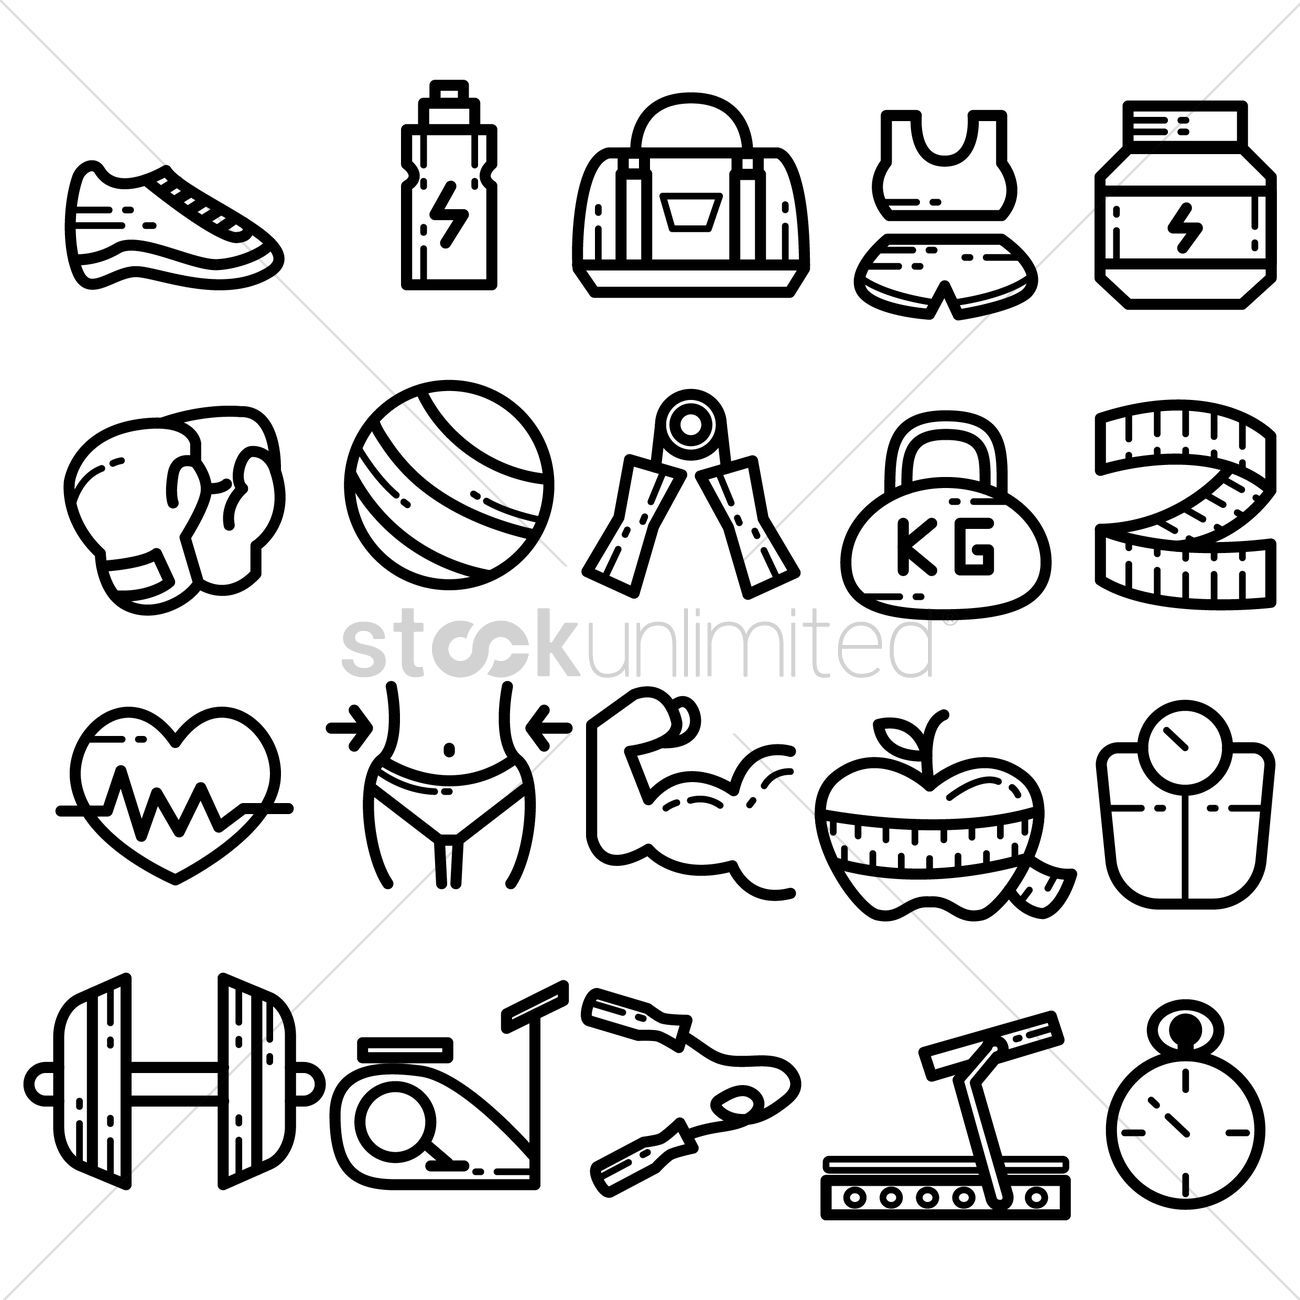 Set of fitness icons vectors, stock clipart , #Ad, #icons, #fitness, #Set, #clipart, #stock #affilia...